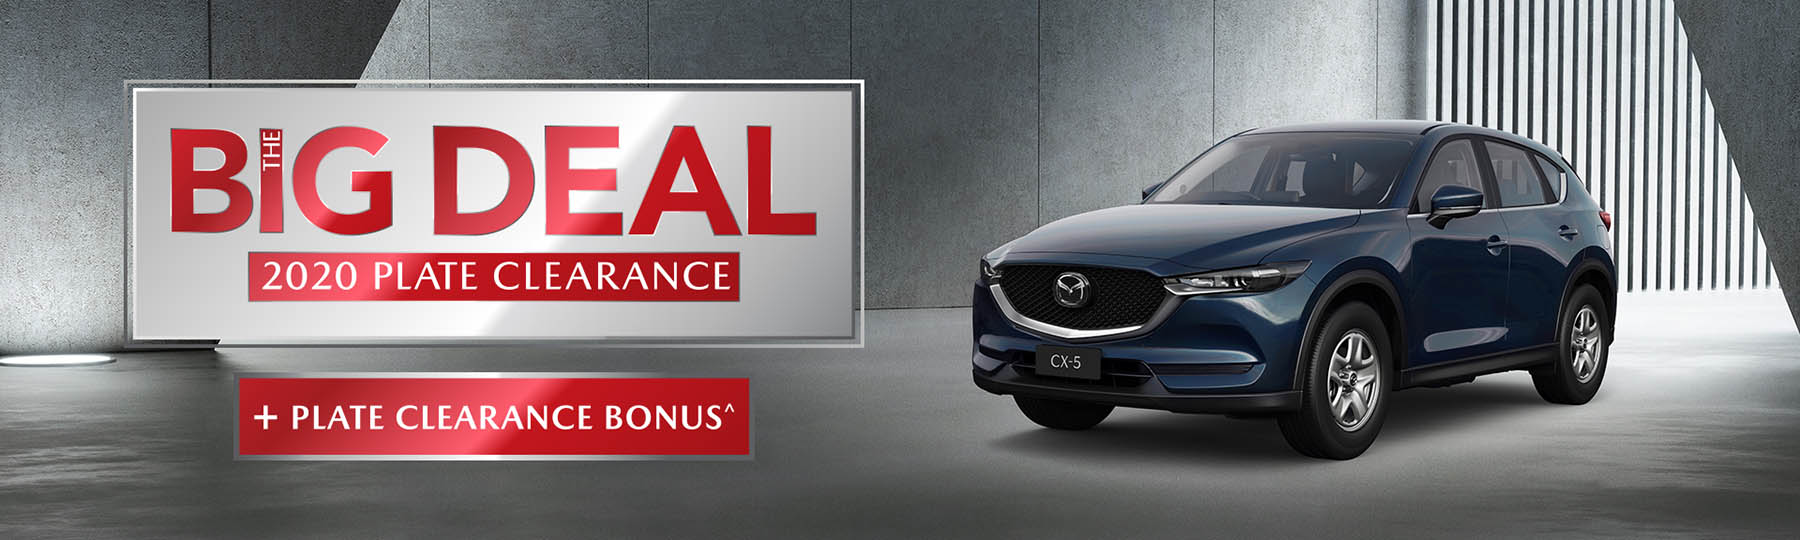 Mazda The Big Deal 2020 Plate Clearance